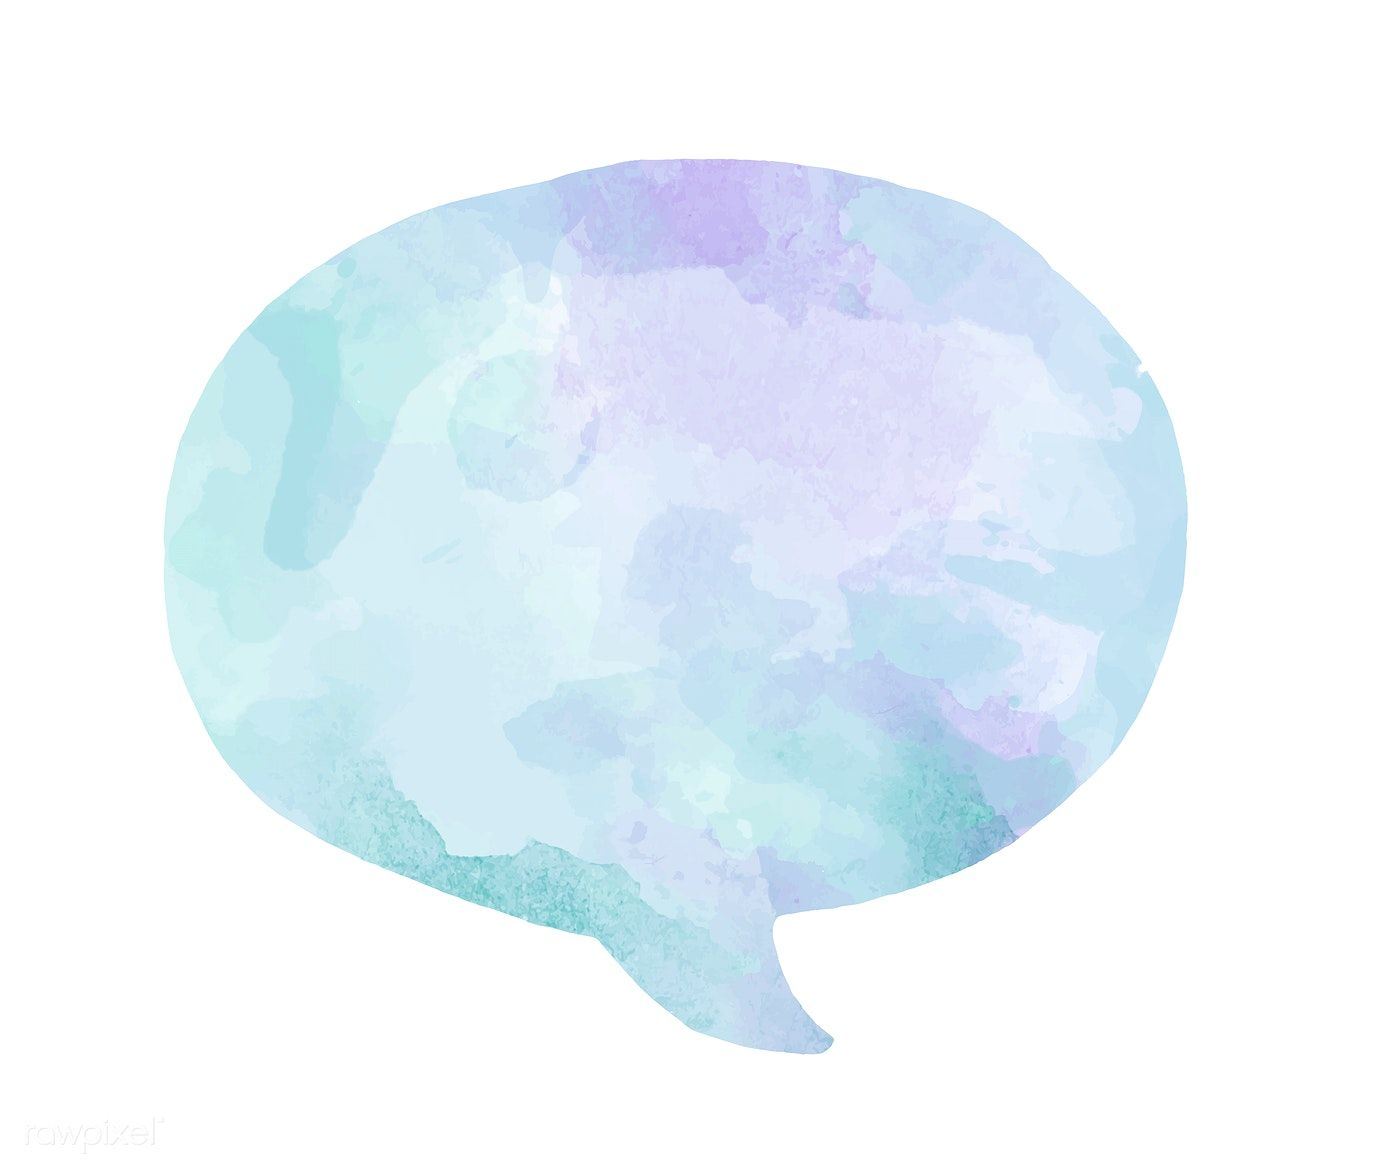 Colorful Watercolor Speech Bubble Vector Free Image By Rawpixel